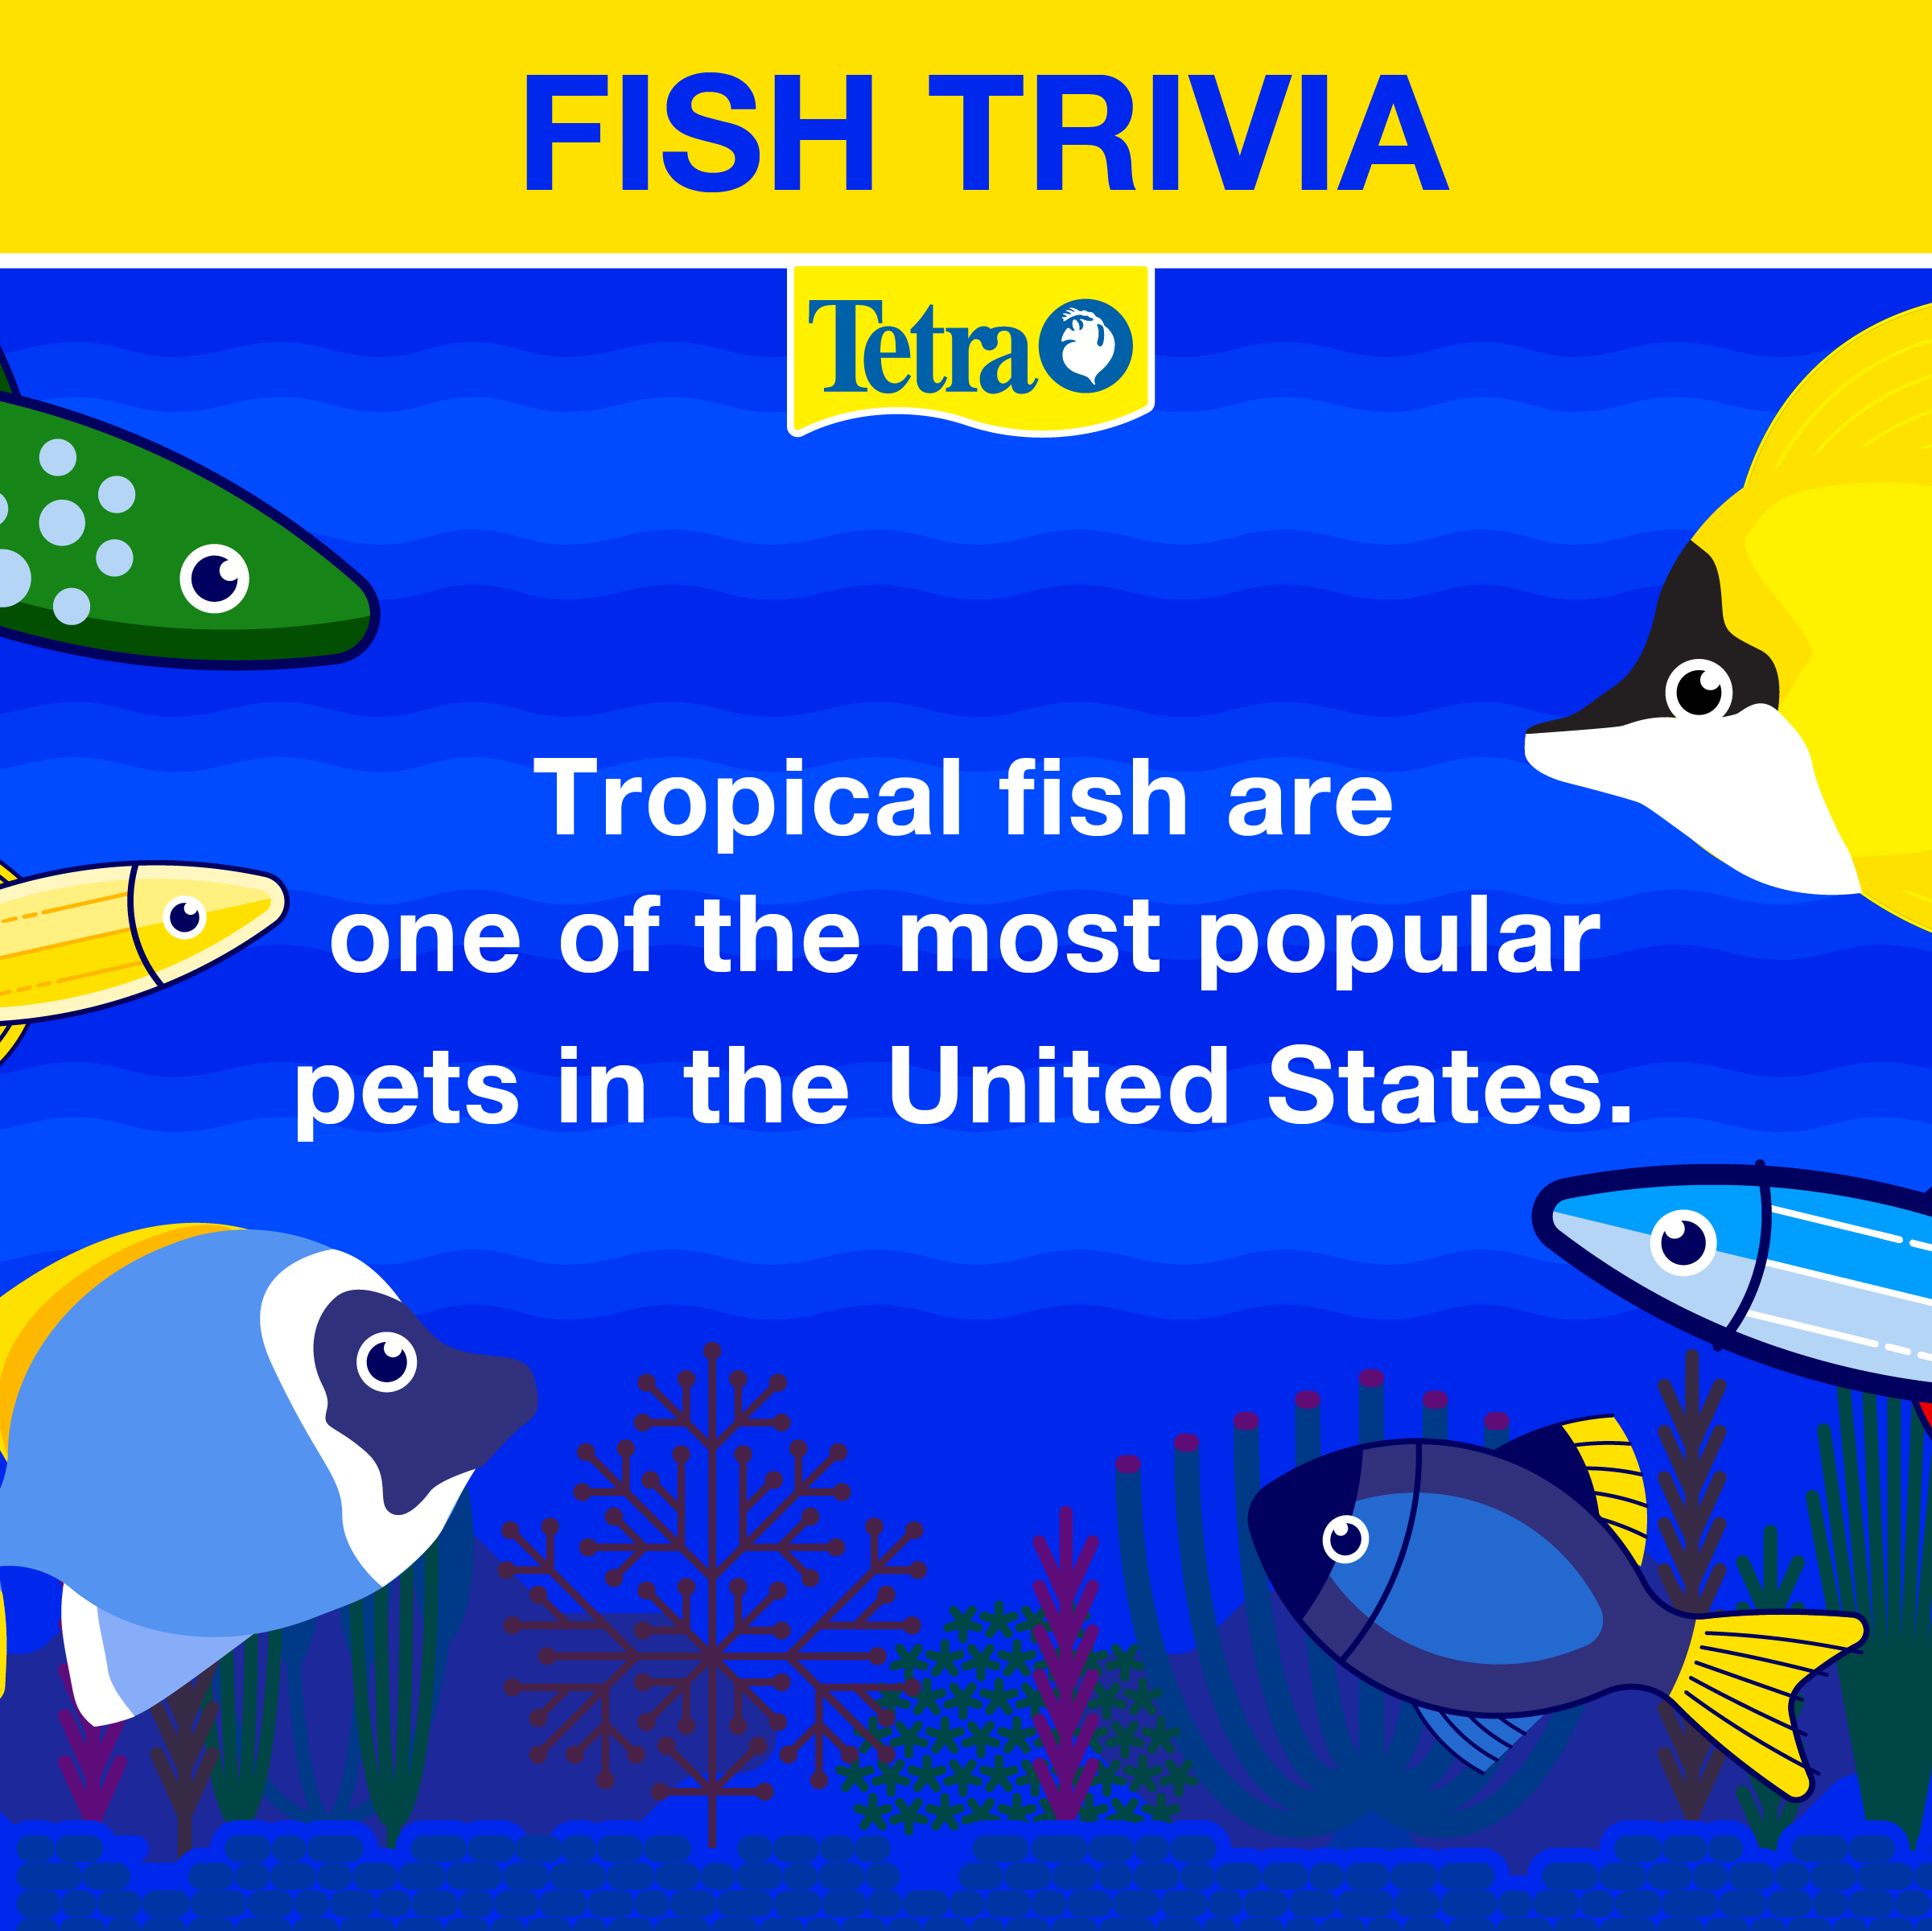 Fish Trivia Tropical Fish Are One Of The Most Popular Pets In The U S Tetrafunfact Fishrock Tropical Fish Tetra Fish Fun Facts